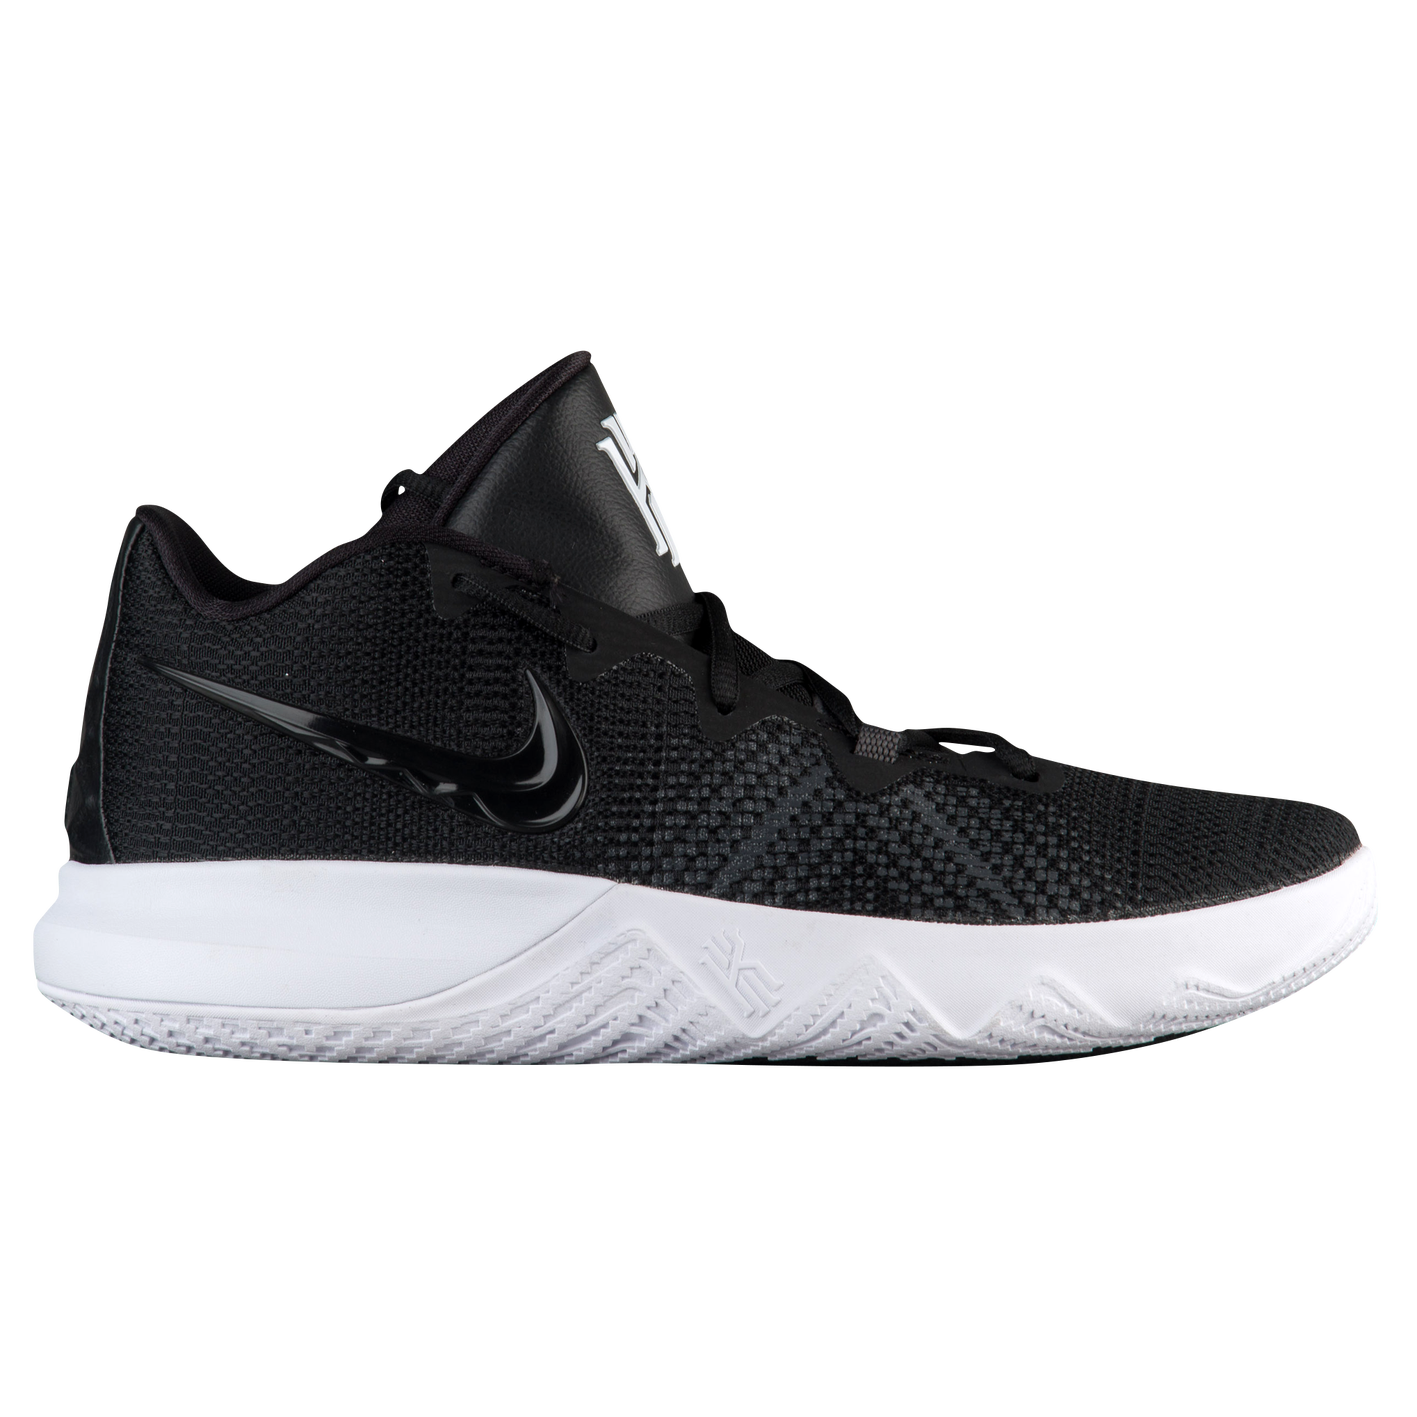 5554524c54f4 Nike Kyrie Flytrap - Men s - Basketball - Shoes - Irving